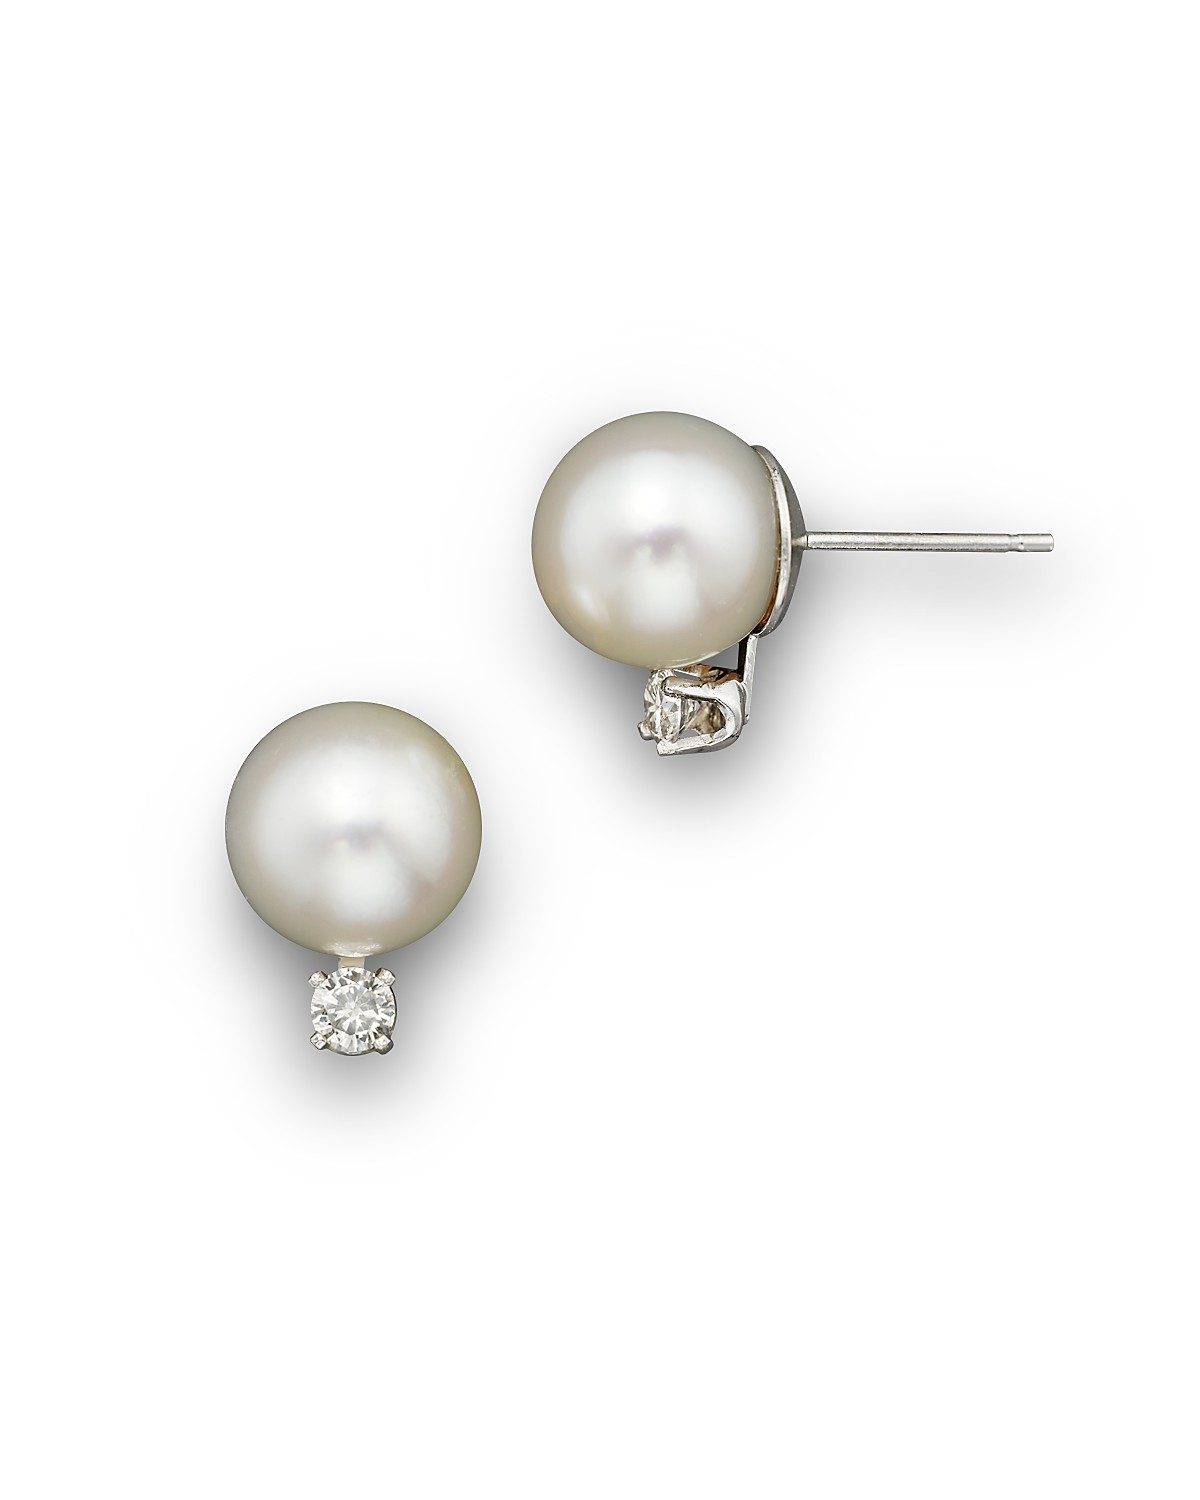 by marianne earrings sapphire pearl and made kodak single product still digital camera